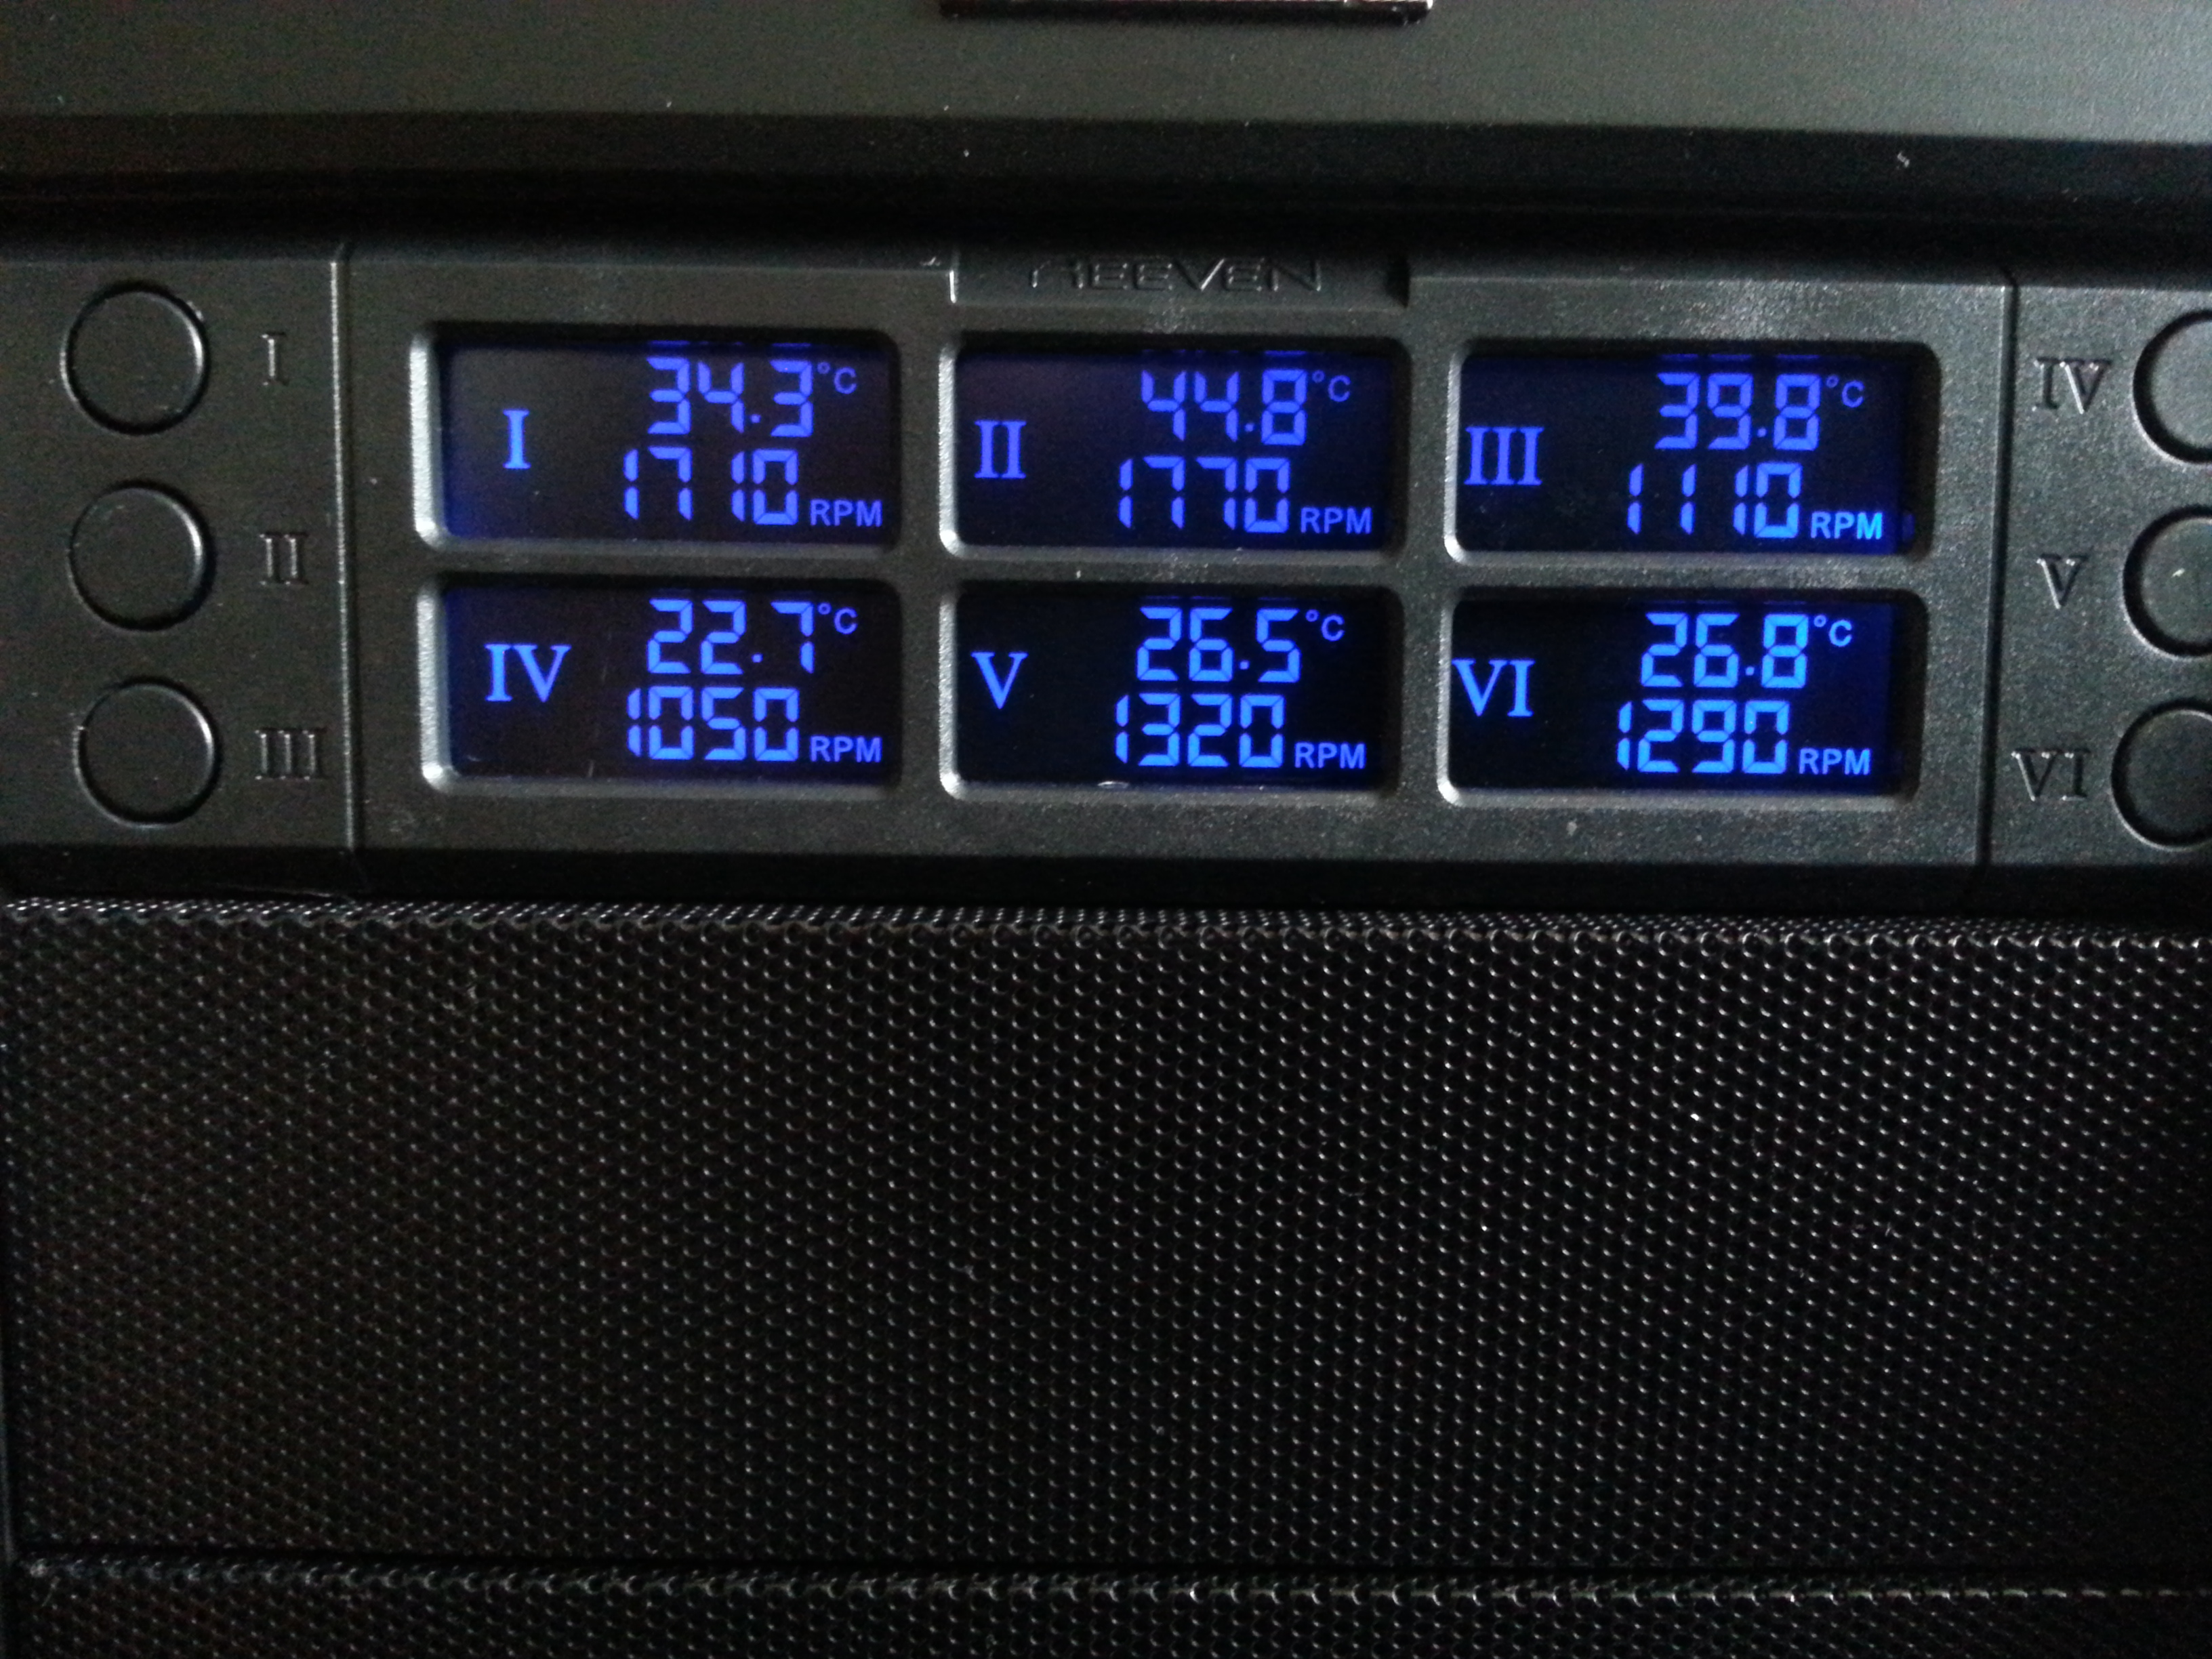 Provides a means for me to monitor all critical temperatures at a glance. CPU and GPU temperatures are controlled and monitored from several different software solutions to accomodate applications and game installations. The RFC-01 provides 6 independent 12w or 1a channels for fan controls with a functioning cut-off voltage of 3.7v allows me to finely tune my case vortex for the ideal positive pressure flow with the least amount of noise. I swear by this component, money well spent for future case migration.   Temperature Channel Deployment  I- Southbridge  temperature  II- Northbridge  temperature  III- MOSFETS  temperature  IV- Intake temperature (room 20.5°C) V- Exhaust temperature  VI- PSU temperature Reeven Six Eyes - http://www.reeven.com/rfc-01-fan-controller/